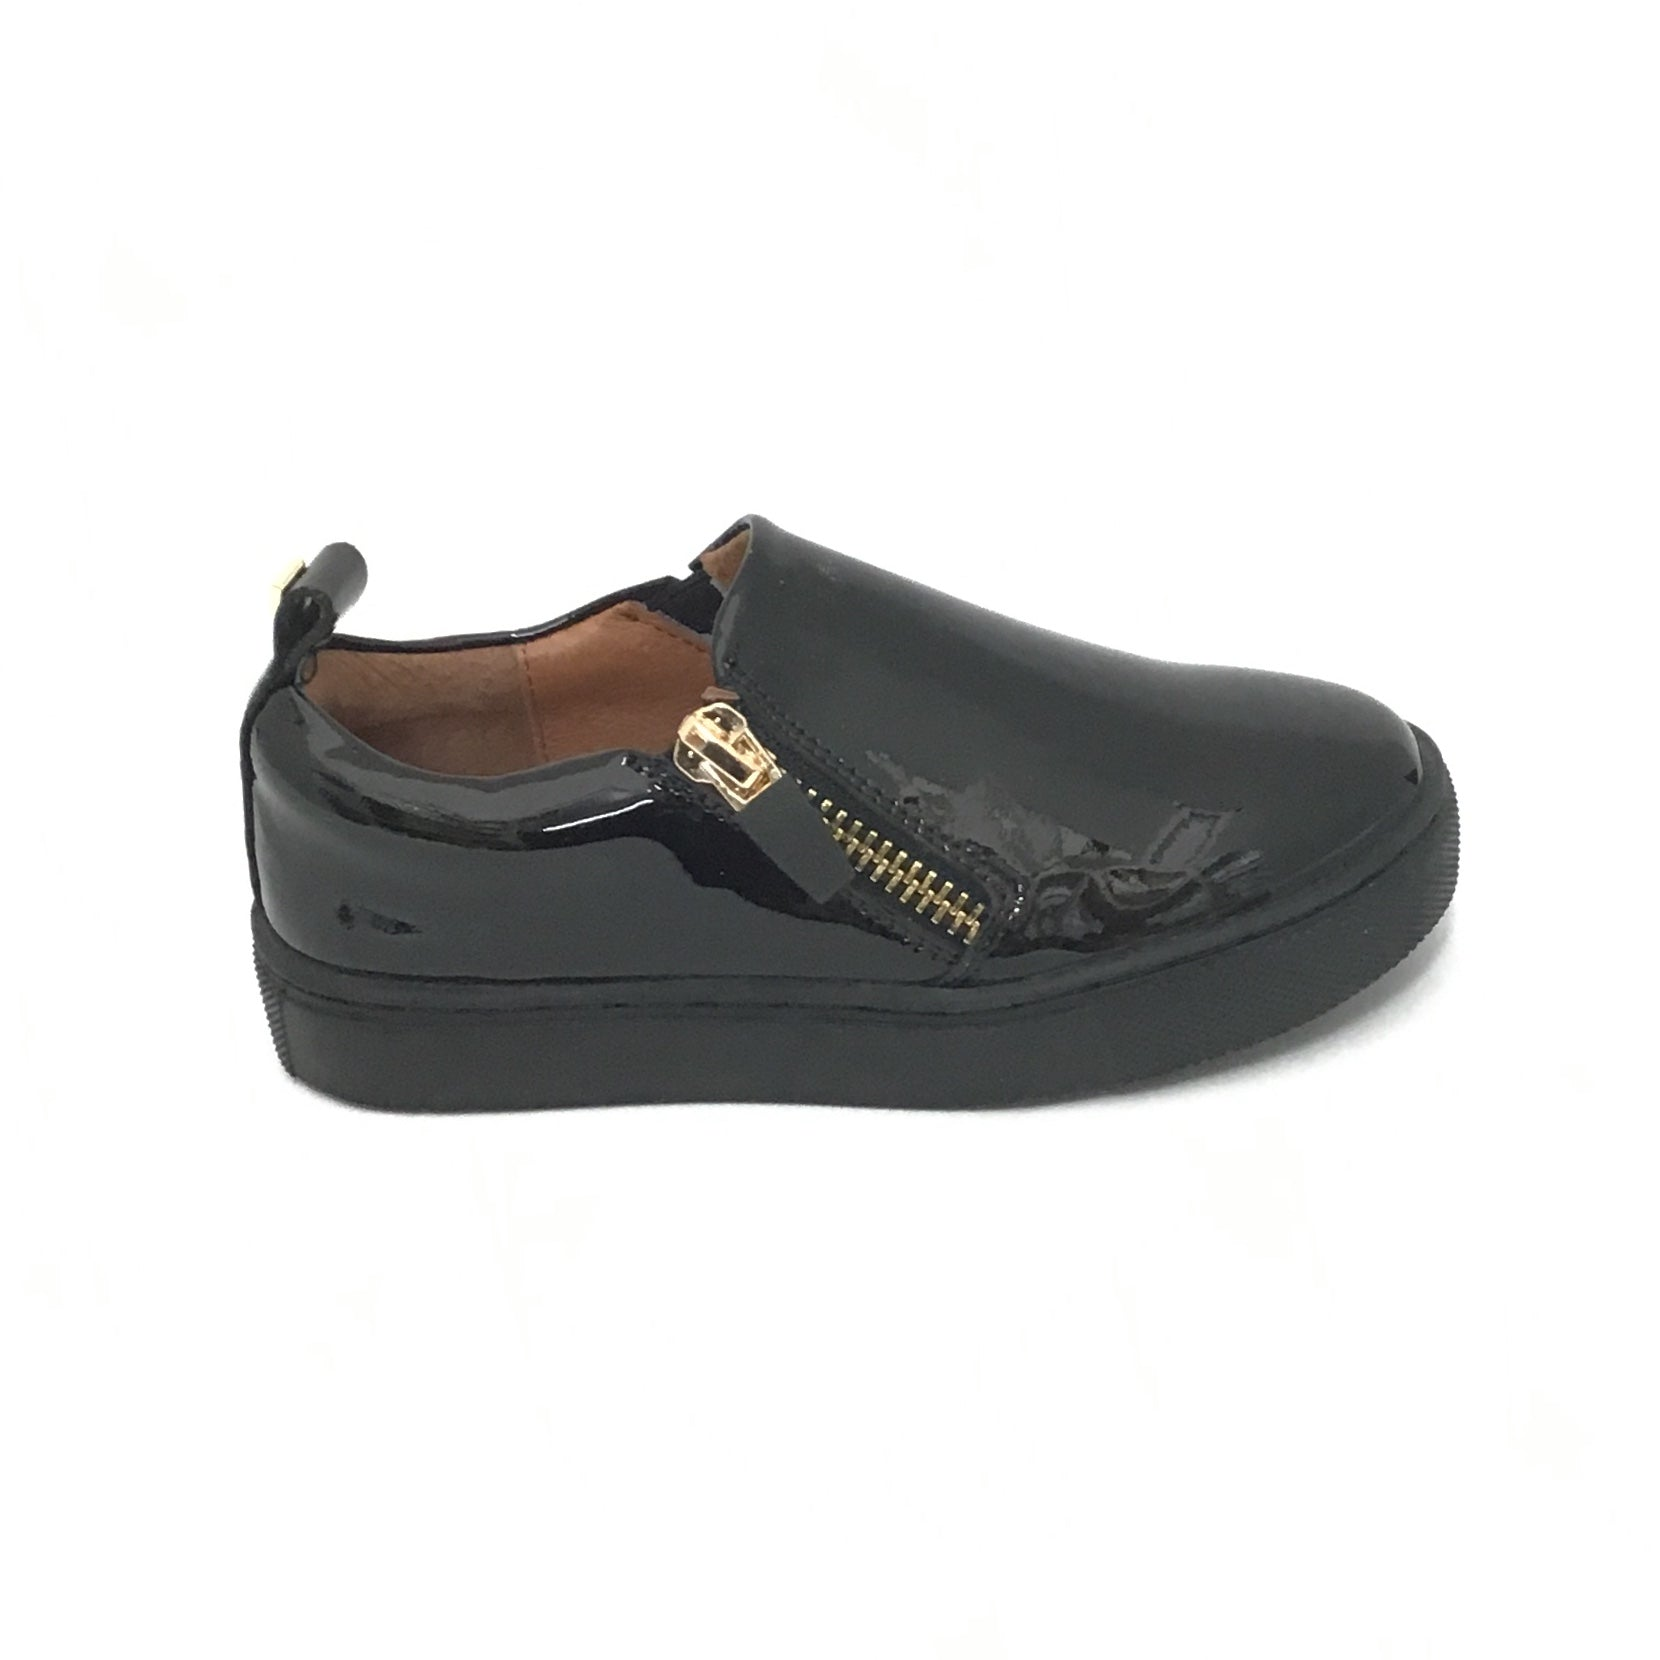 Venettini Black Patent Sneaker With Side Zippers